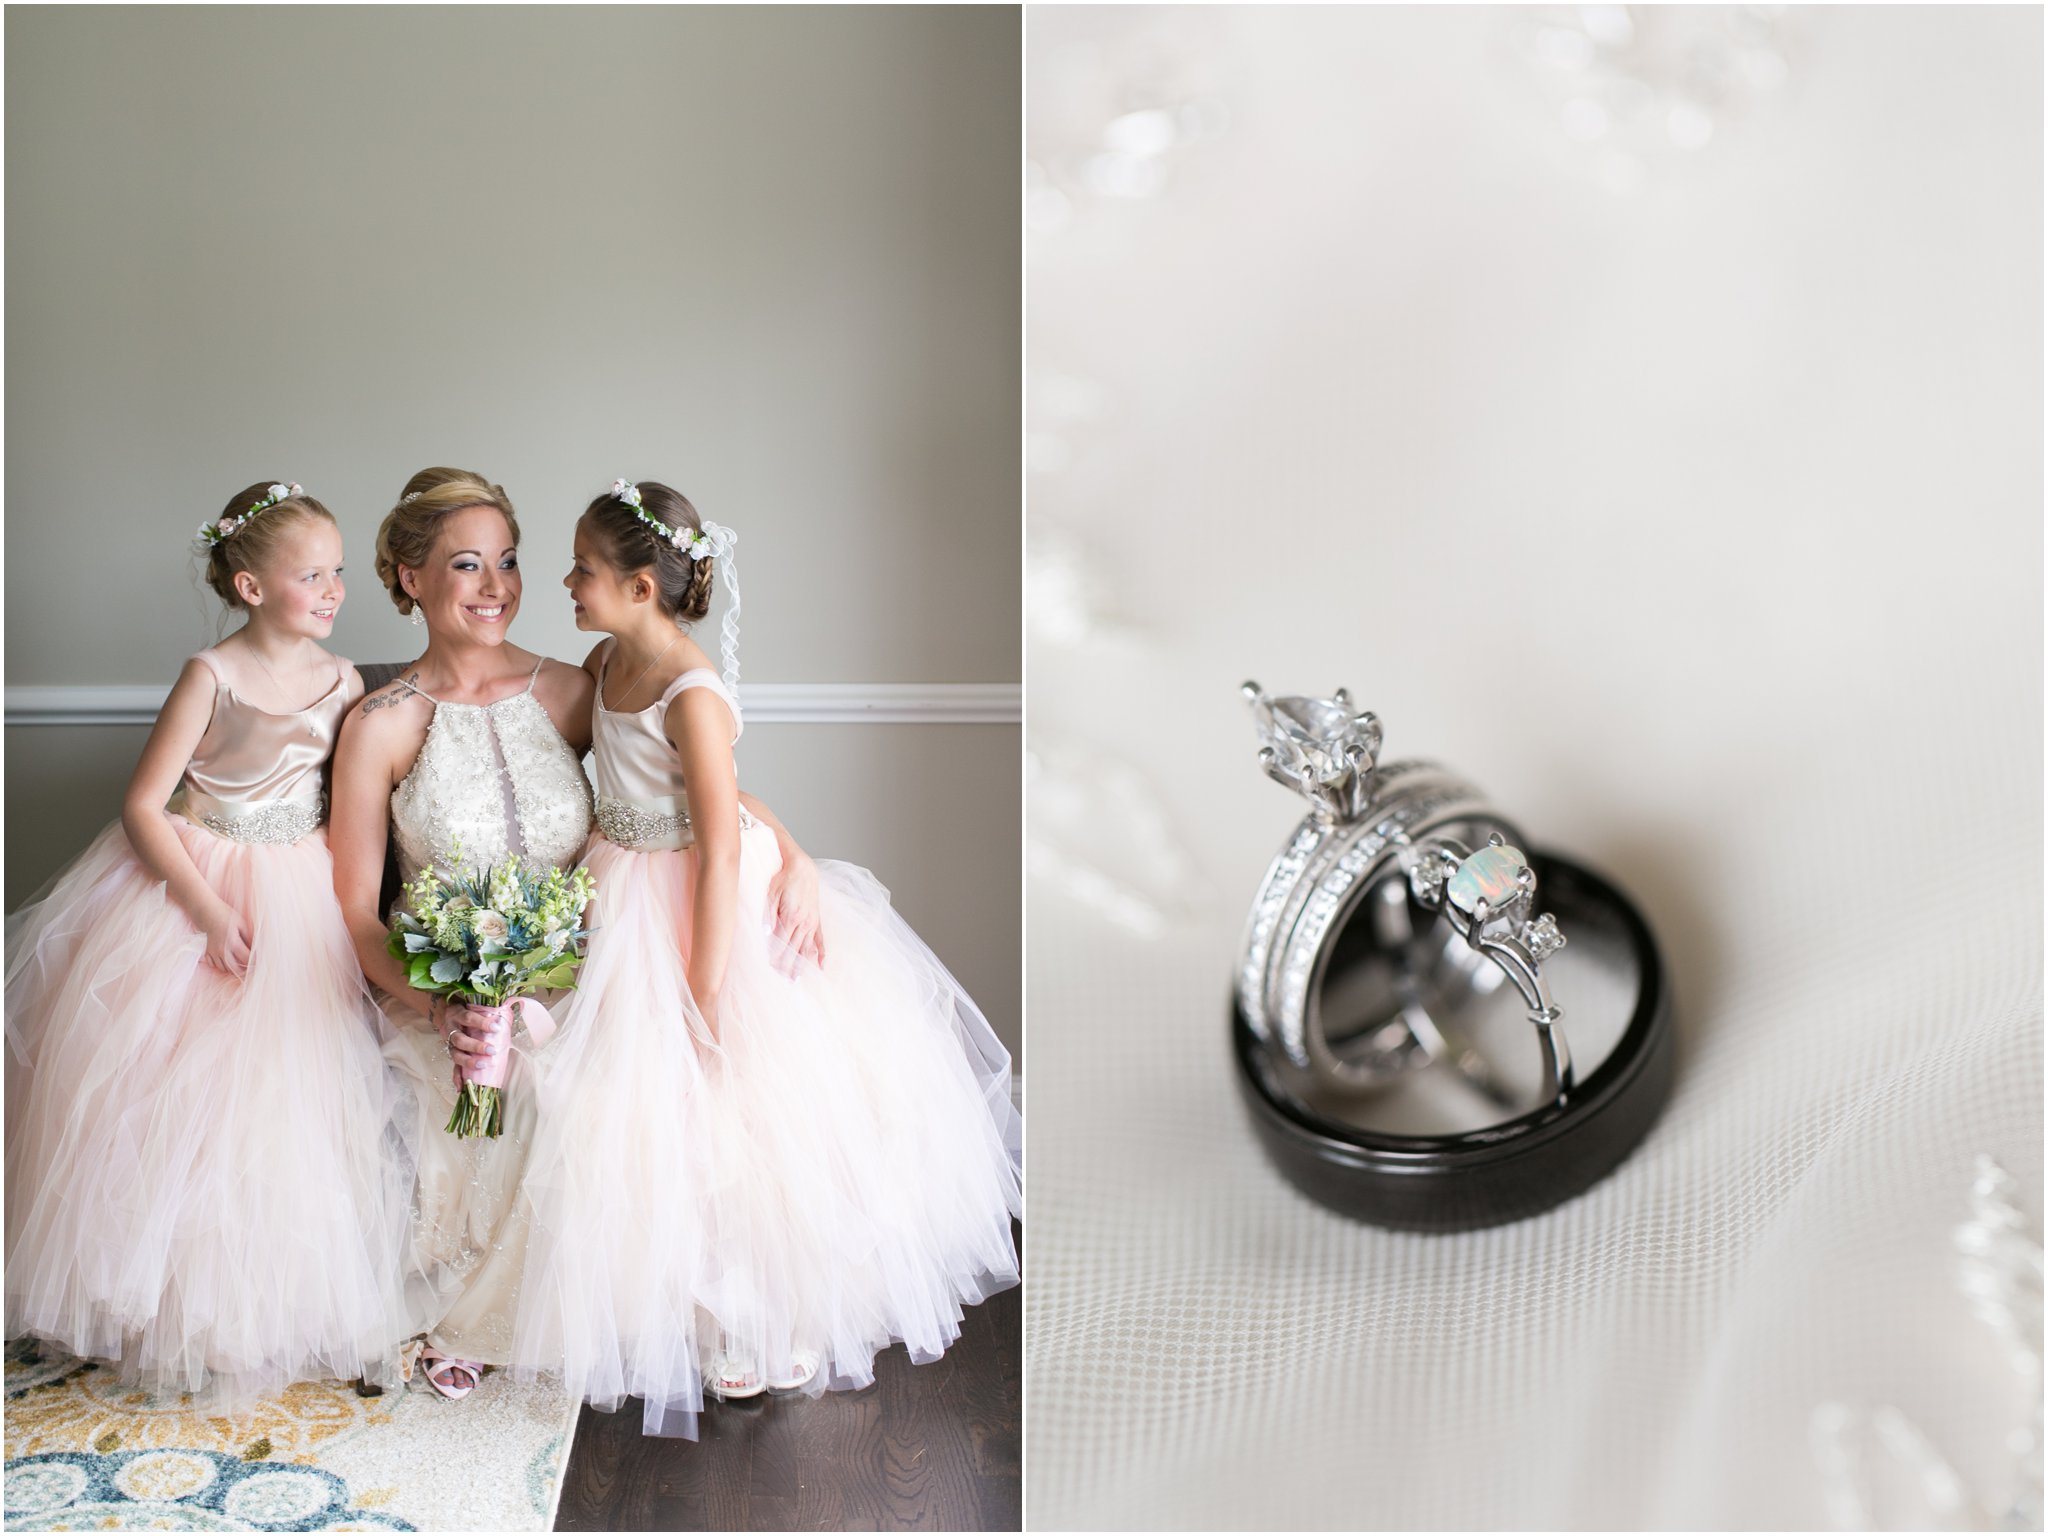 Jessicaryanphotography_virginiabeachwedding_virginiaweddingphotographer_weddingdetails_weddingjewelry_weddingdecorations_0427